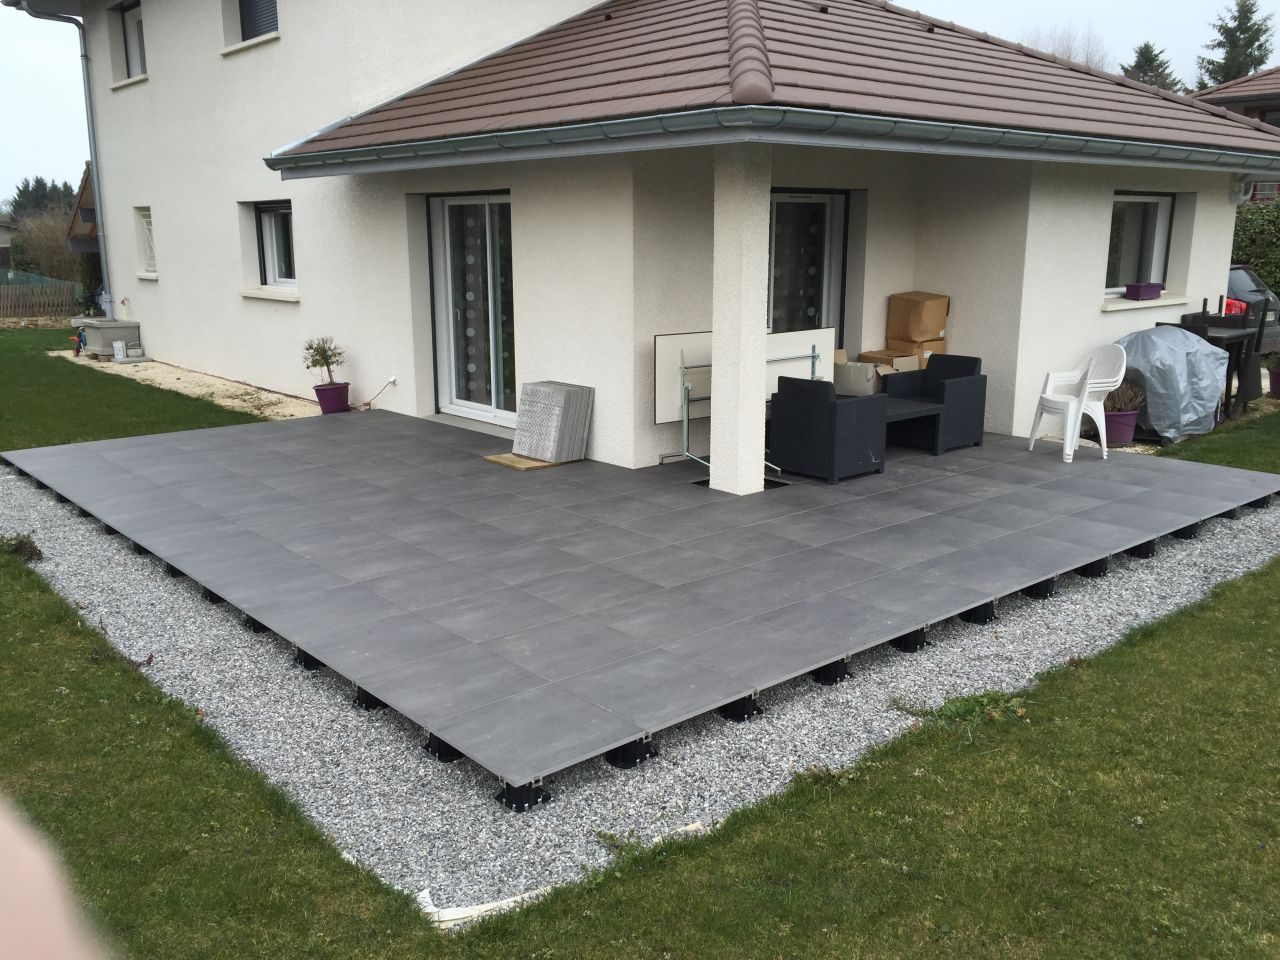 Poser dalle pvc sur carrelage maison design for Pose carrelage sur carrelage